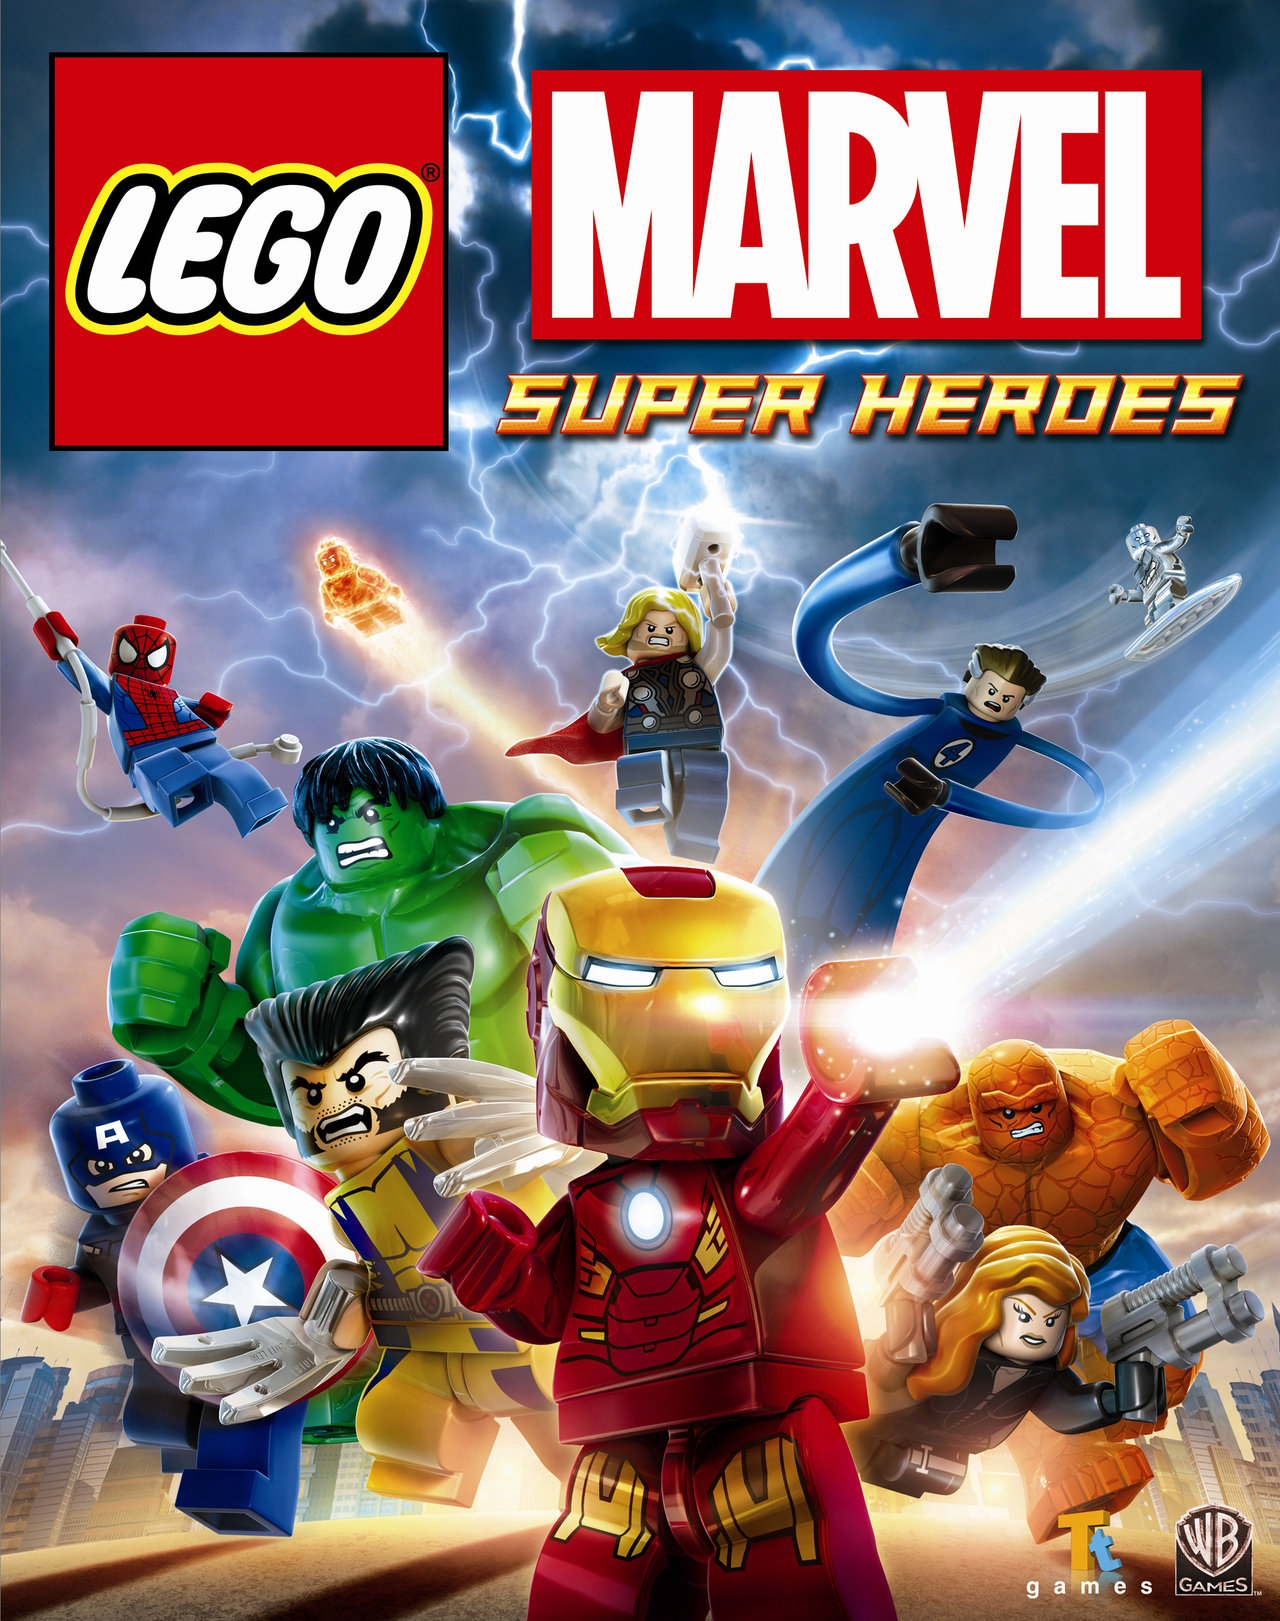 Lego Marvel Super Heroes en 3D dans 3D jaquette-lego-marvel-super-heroes-playstation-3-ps3-cover-avant-g-1373555276